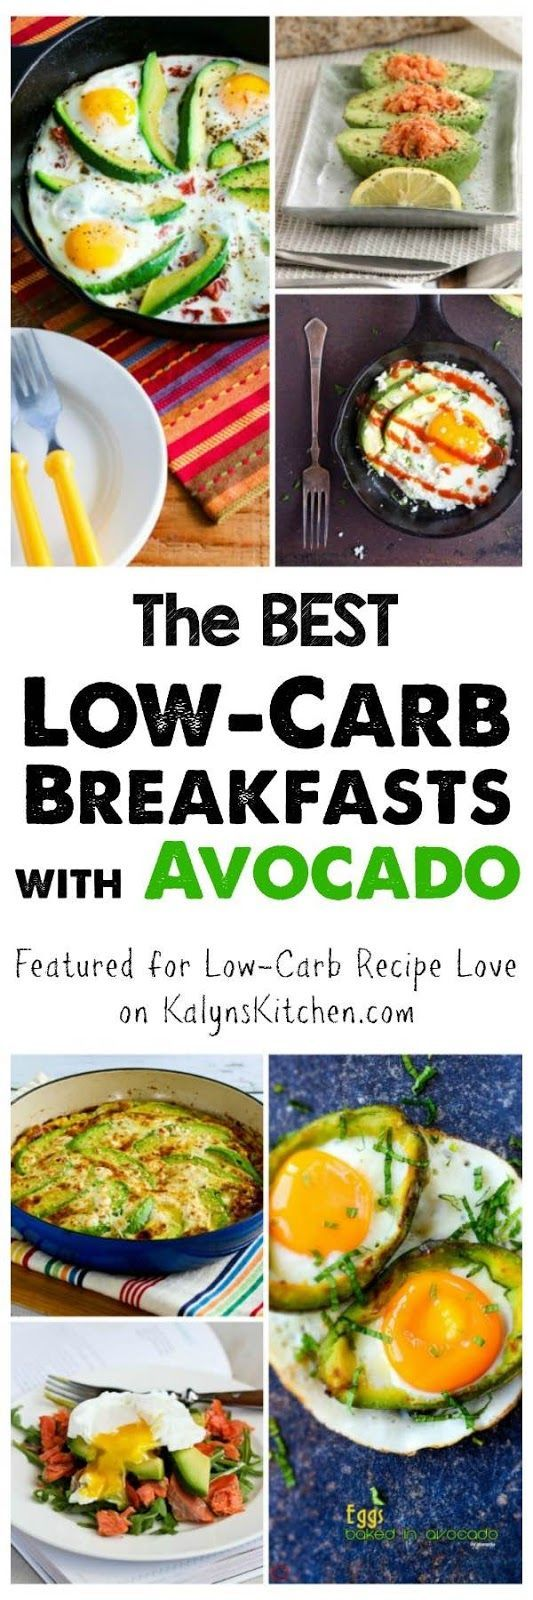 Avocados are always a treat, and I especially like them this time of year when I'm bored with winter foods. Here are The BEST Low-Carb Breakfasts with Avocado; enjoy!  [featured for Low-Carb Recipe Love on http://KalynsKitchen.com]